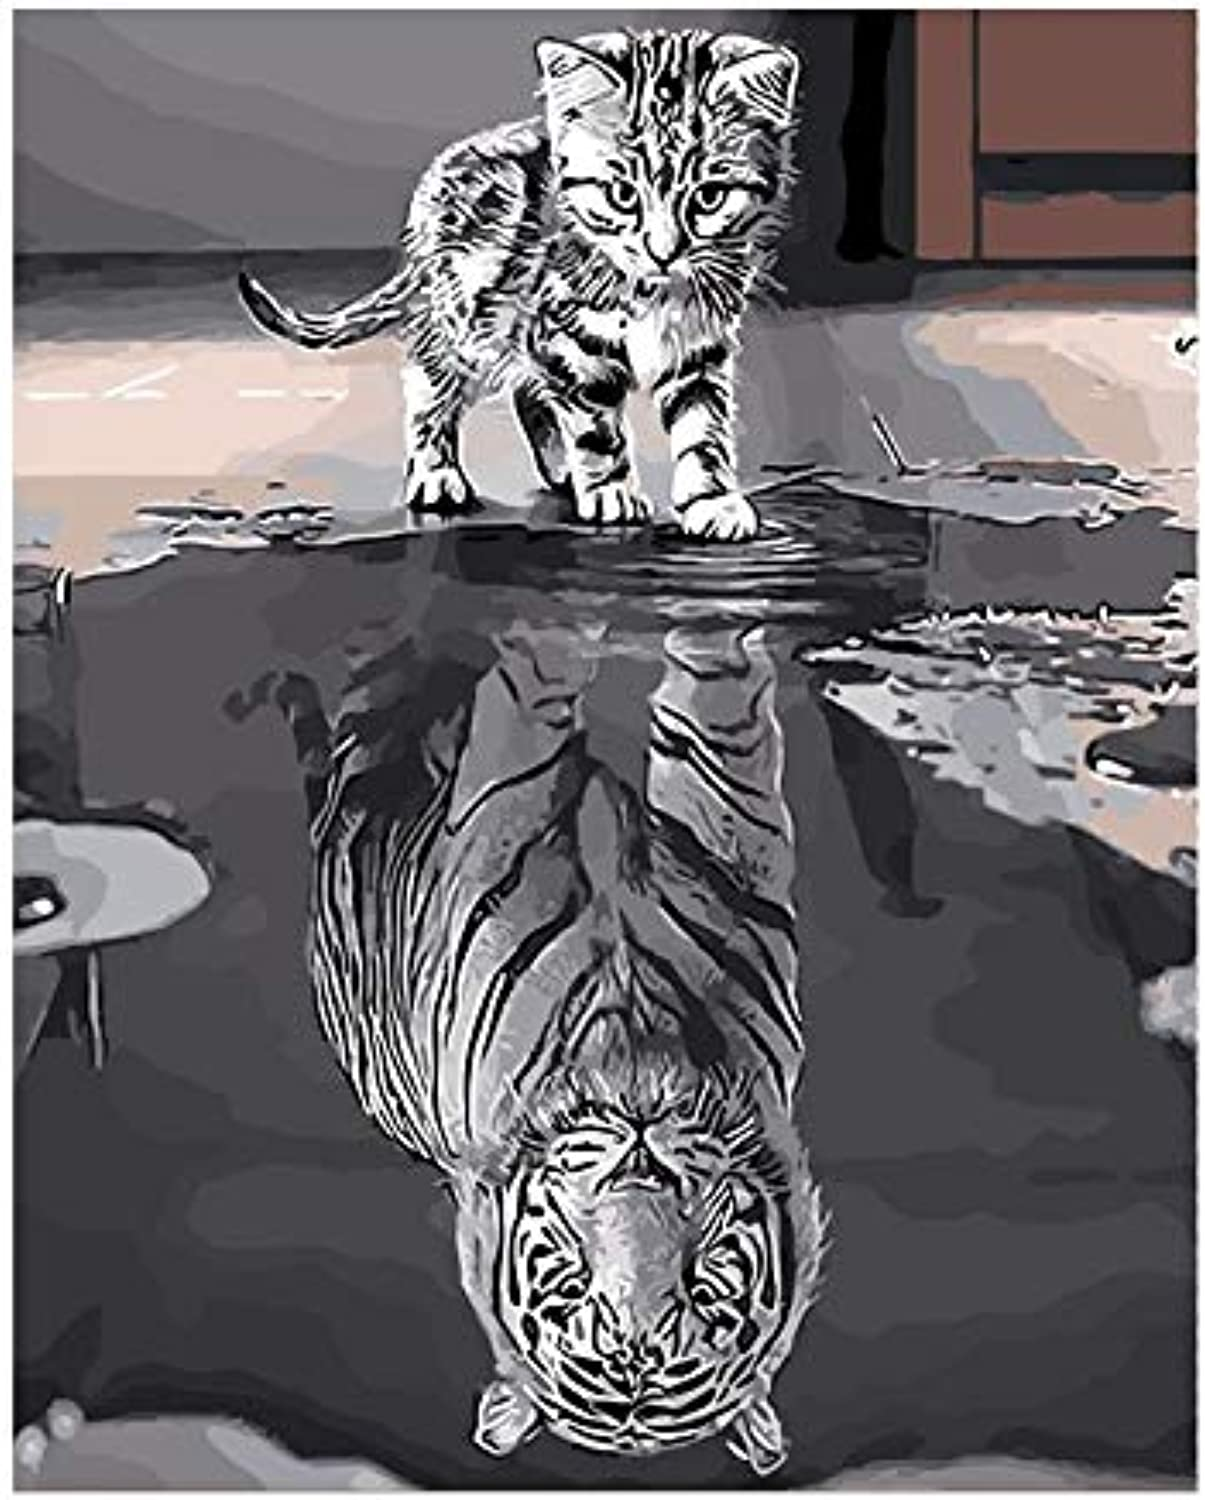 Tuwba Paint by Numbers Adult Kit Reflection Cat Animal Beginner Acrylic On Canvas,Framed 40X50Cm